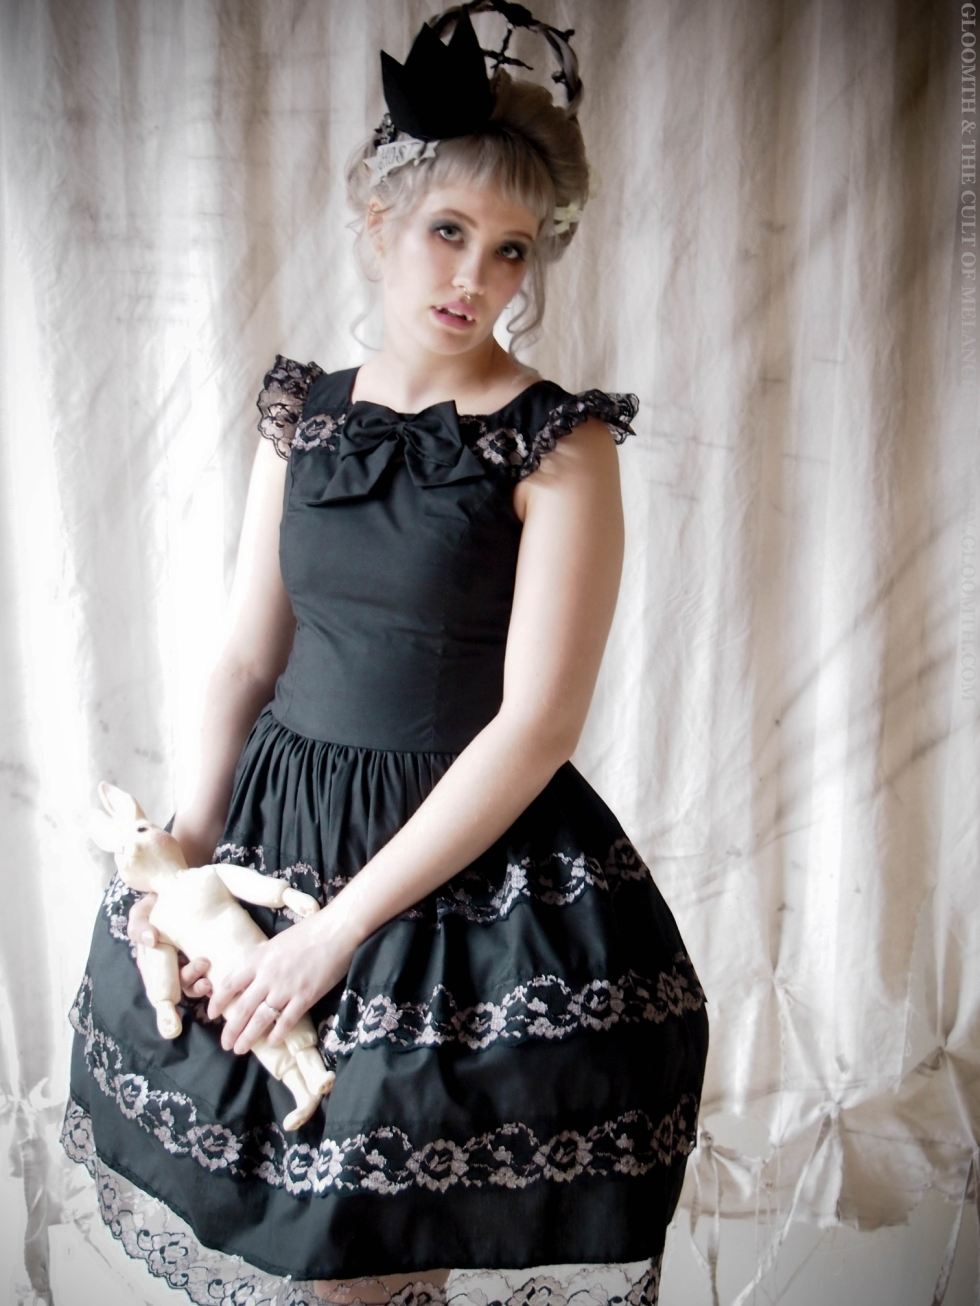 seance gothic prom dress gloomth bridesmaid